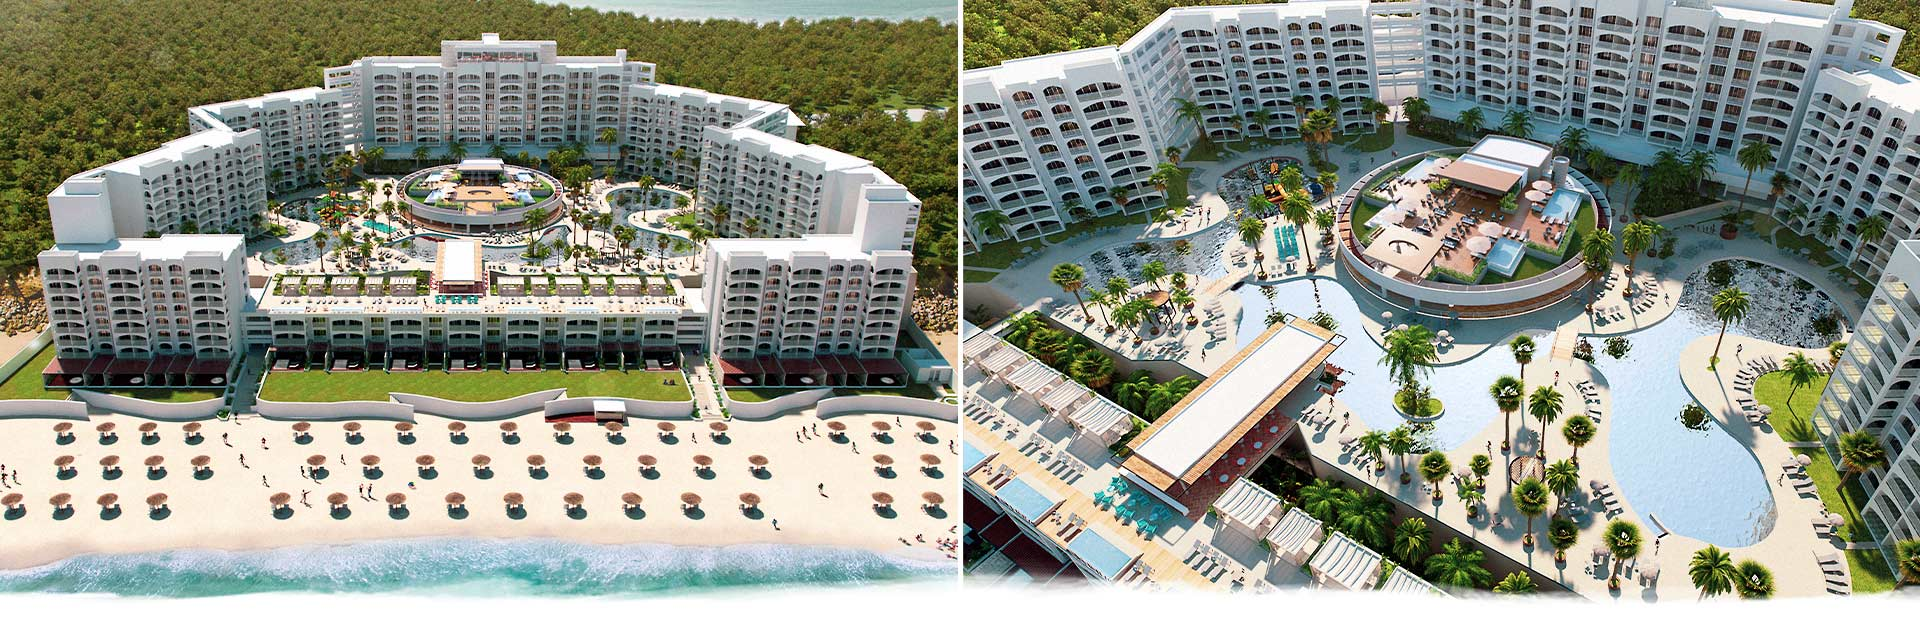 Royal Uno the best all inclusive Cancun resort